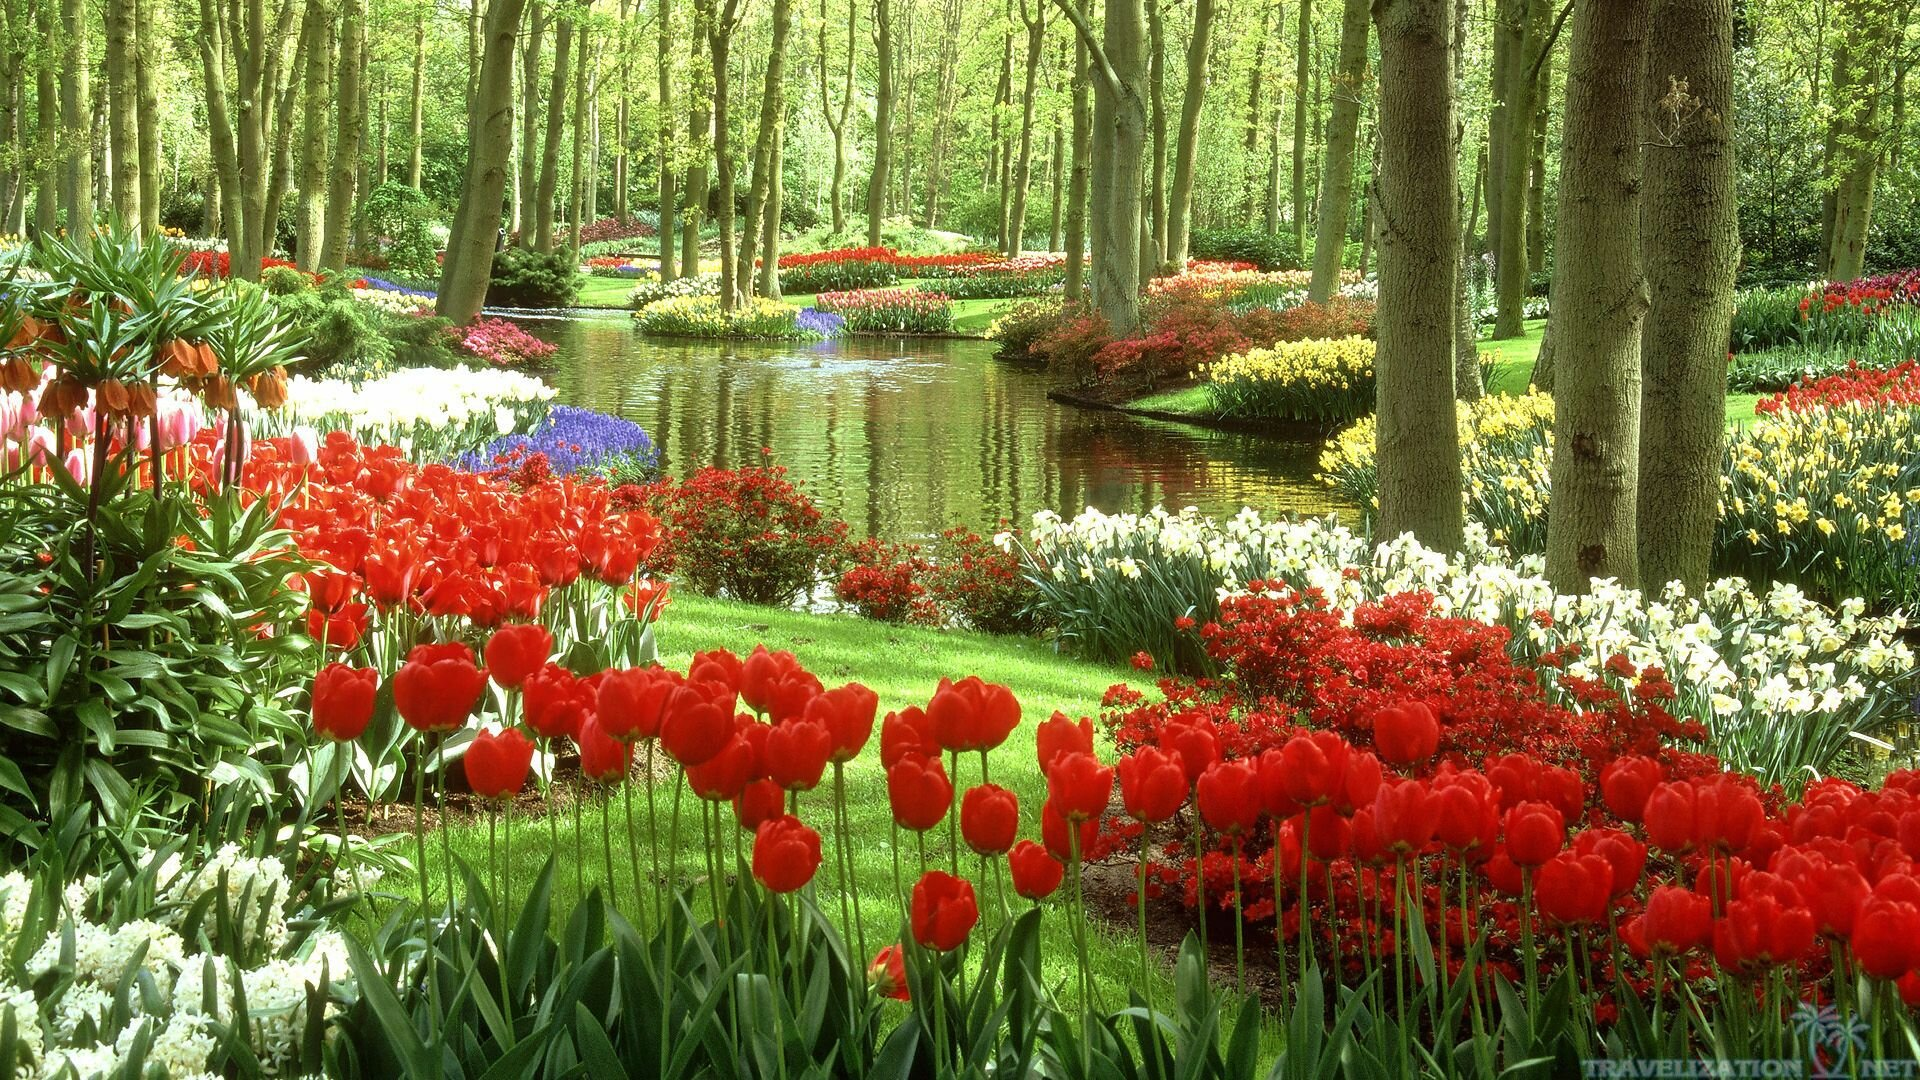 28 beautiful gardens like dream mostbeautifulthings for Beautiful garden images hd